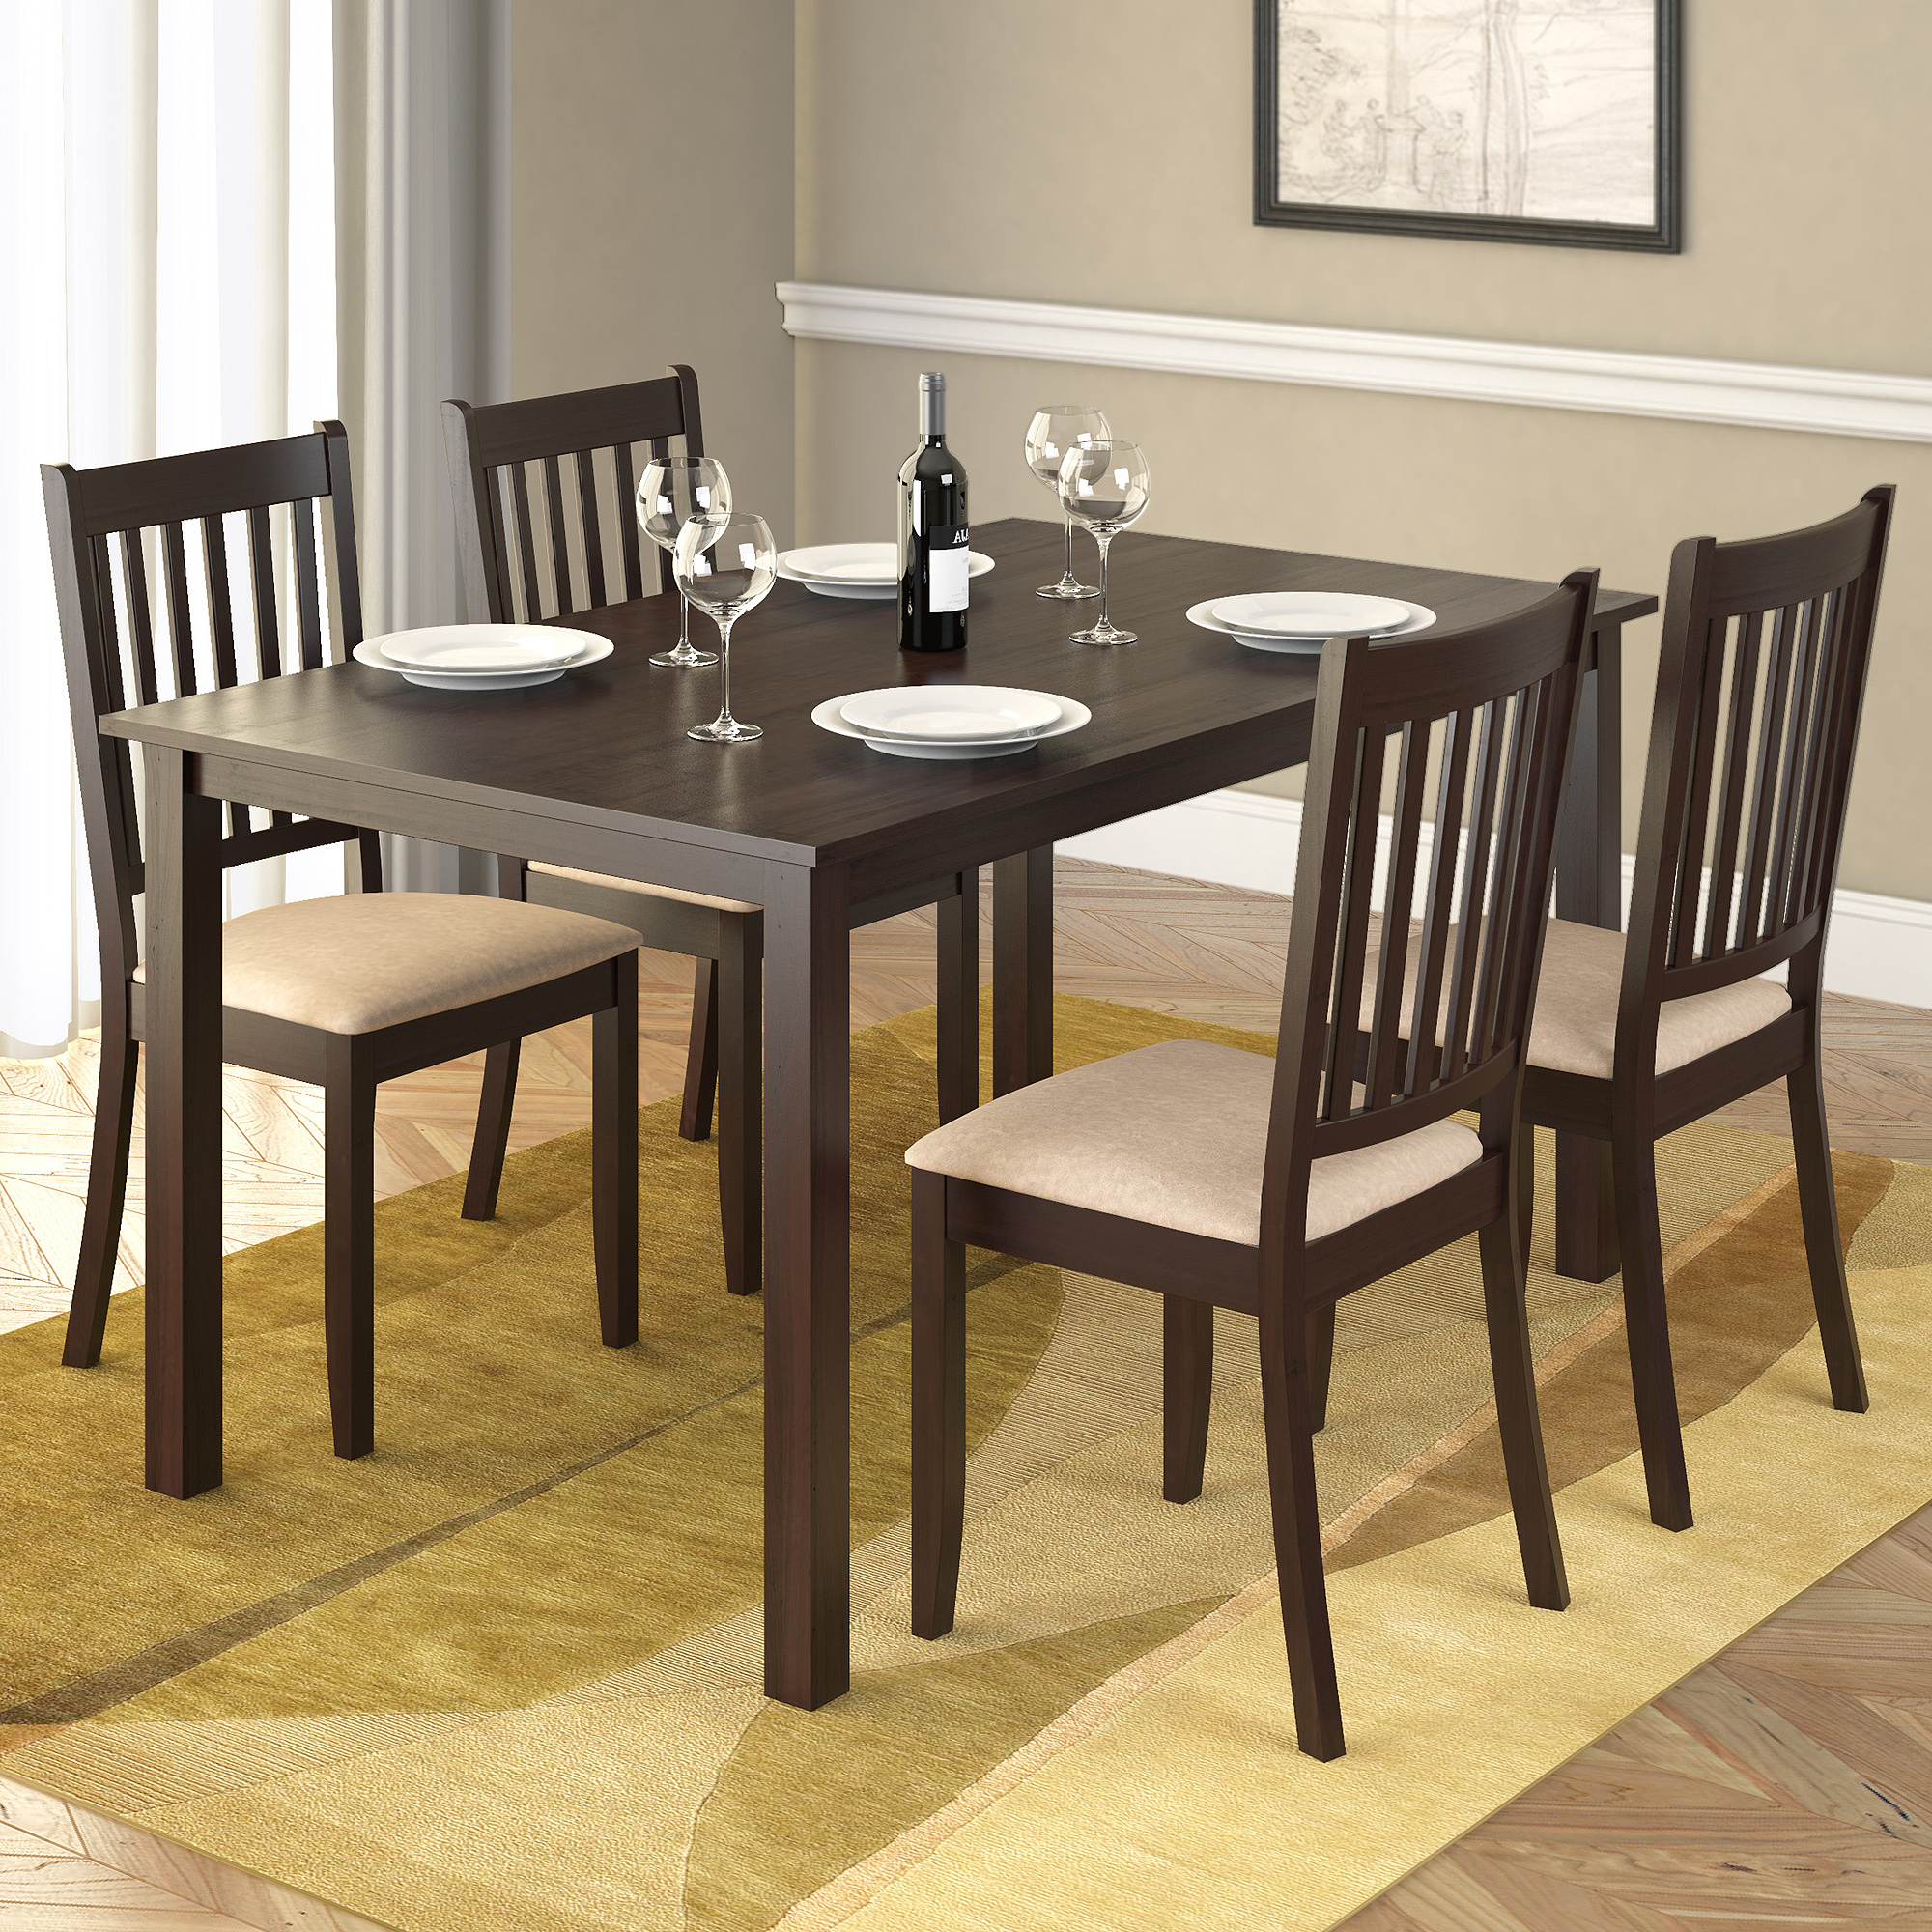 "Well Known Corliving Atwood 55"" Dining Table, Cappuccino – Walmart With Regard To Atwood Transitional Square Dining Tables (View 11 of 30)"